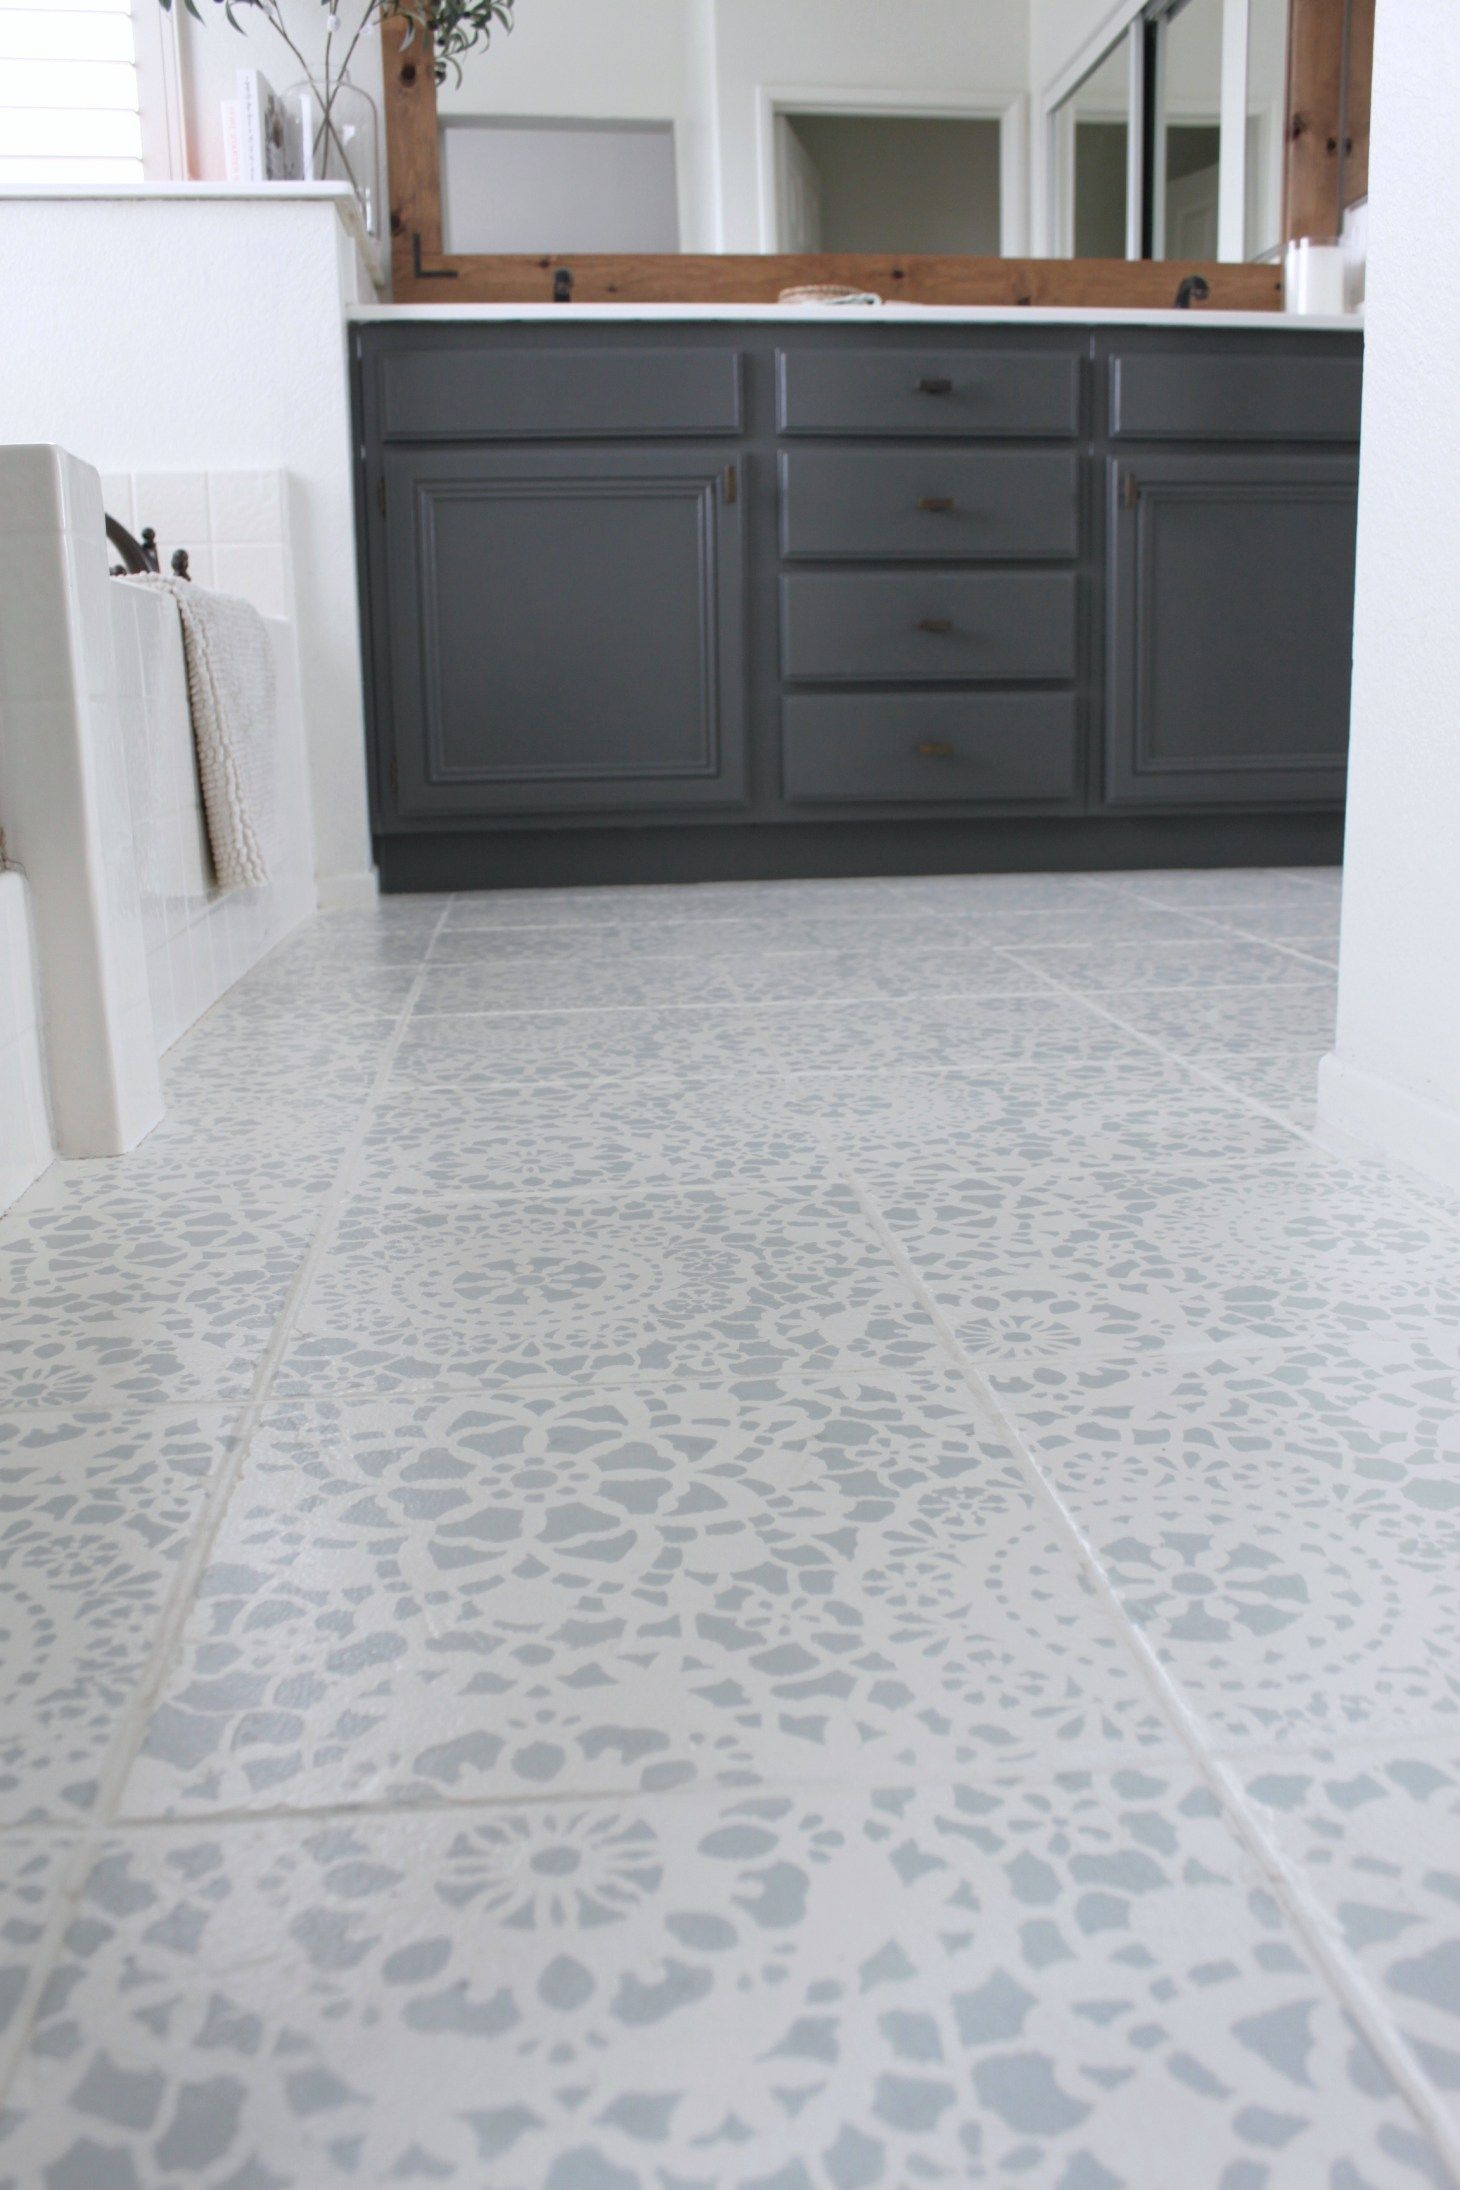 Stencil Tile Floor Update is part of Stenciled tile floor, Painting tile floors, Painting tile, Bathroom flooring, Tile bathroom, Tile floor - Stencil Tile Floor Update top US DIY blog, Domestic Blonde, shares an update on how their Bathroom Stencil Tile Floor is holding up over time  Click here!